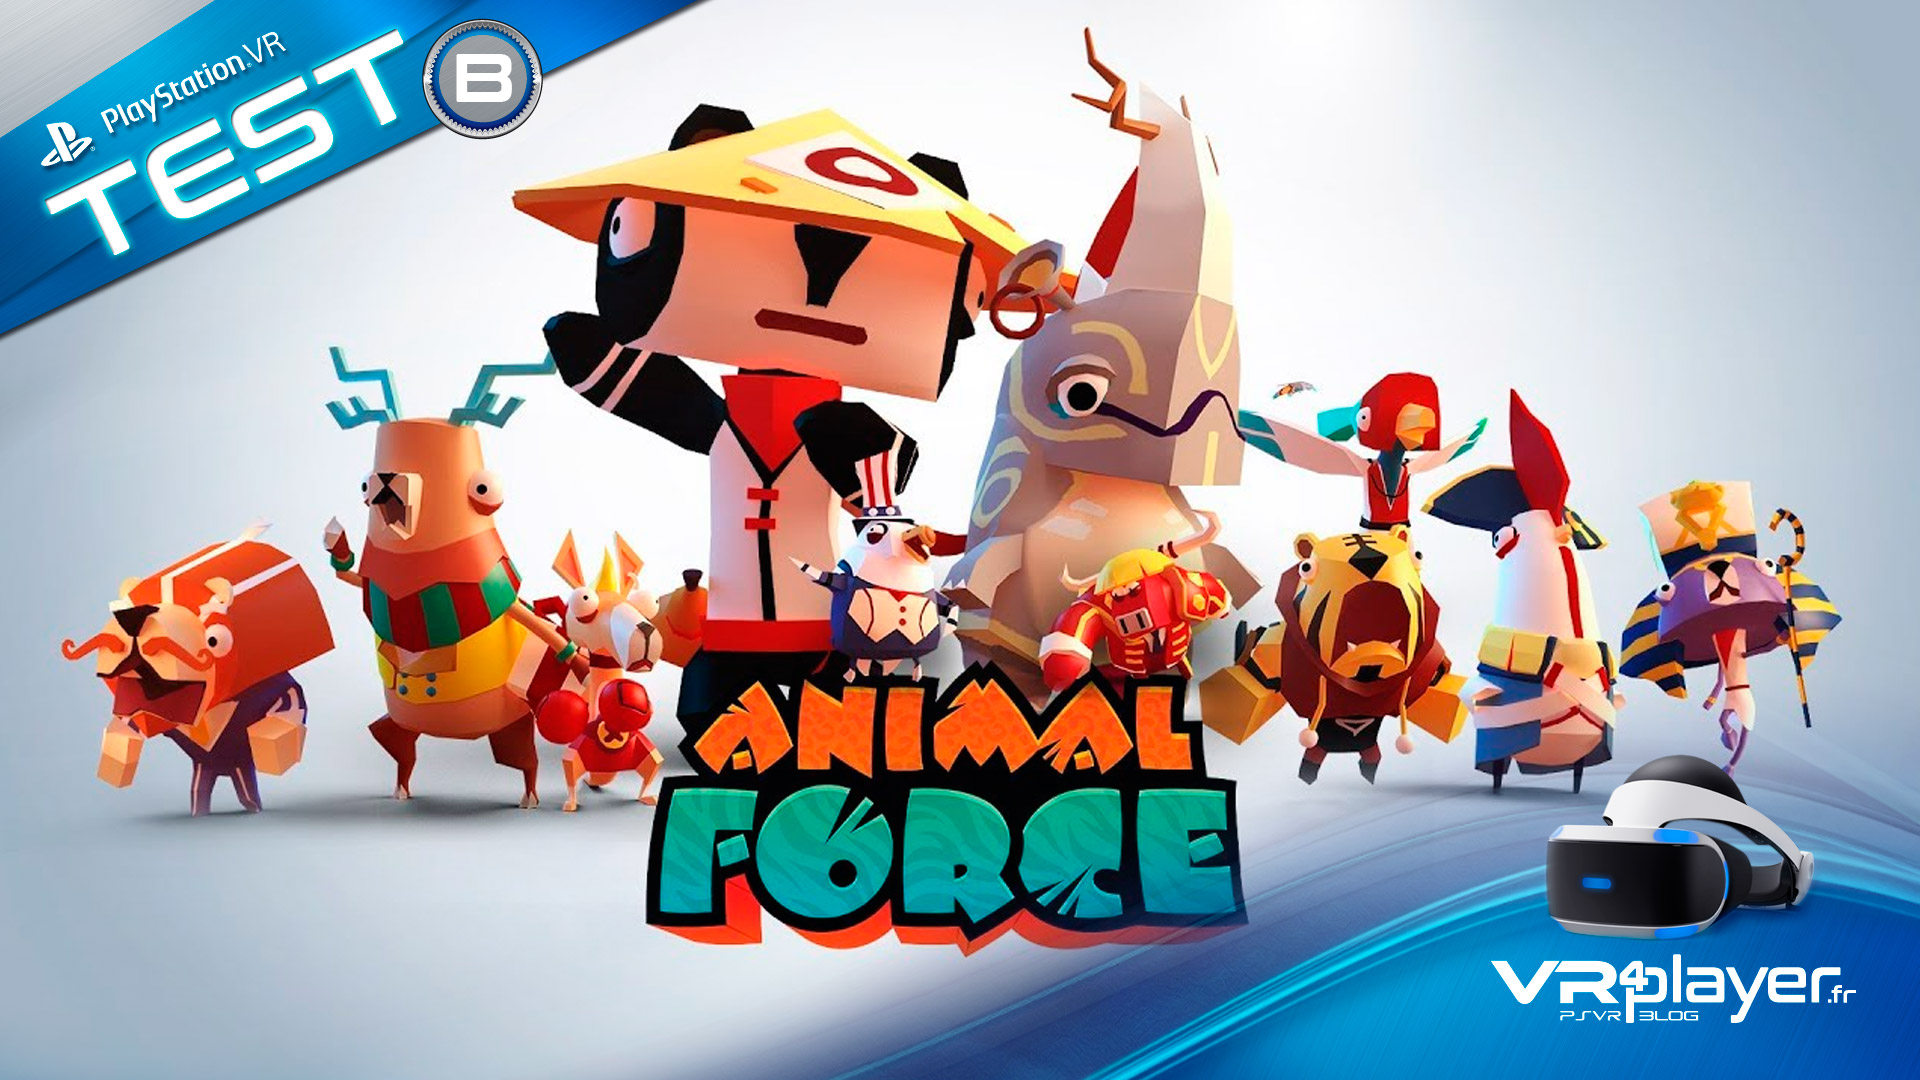 Animal Force Test Review VR4player PlayStation VR